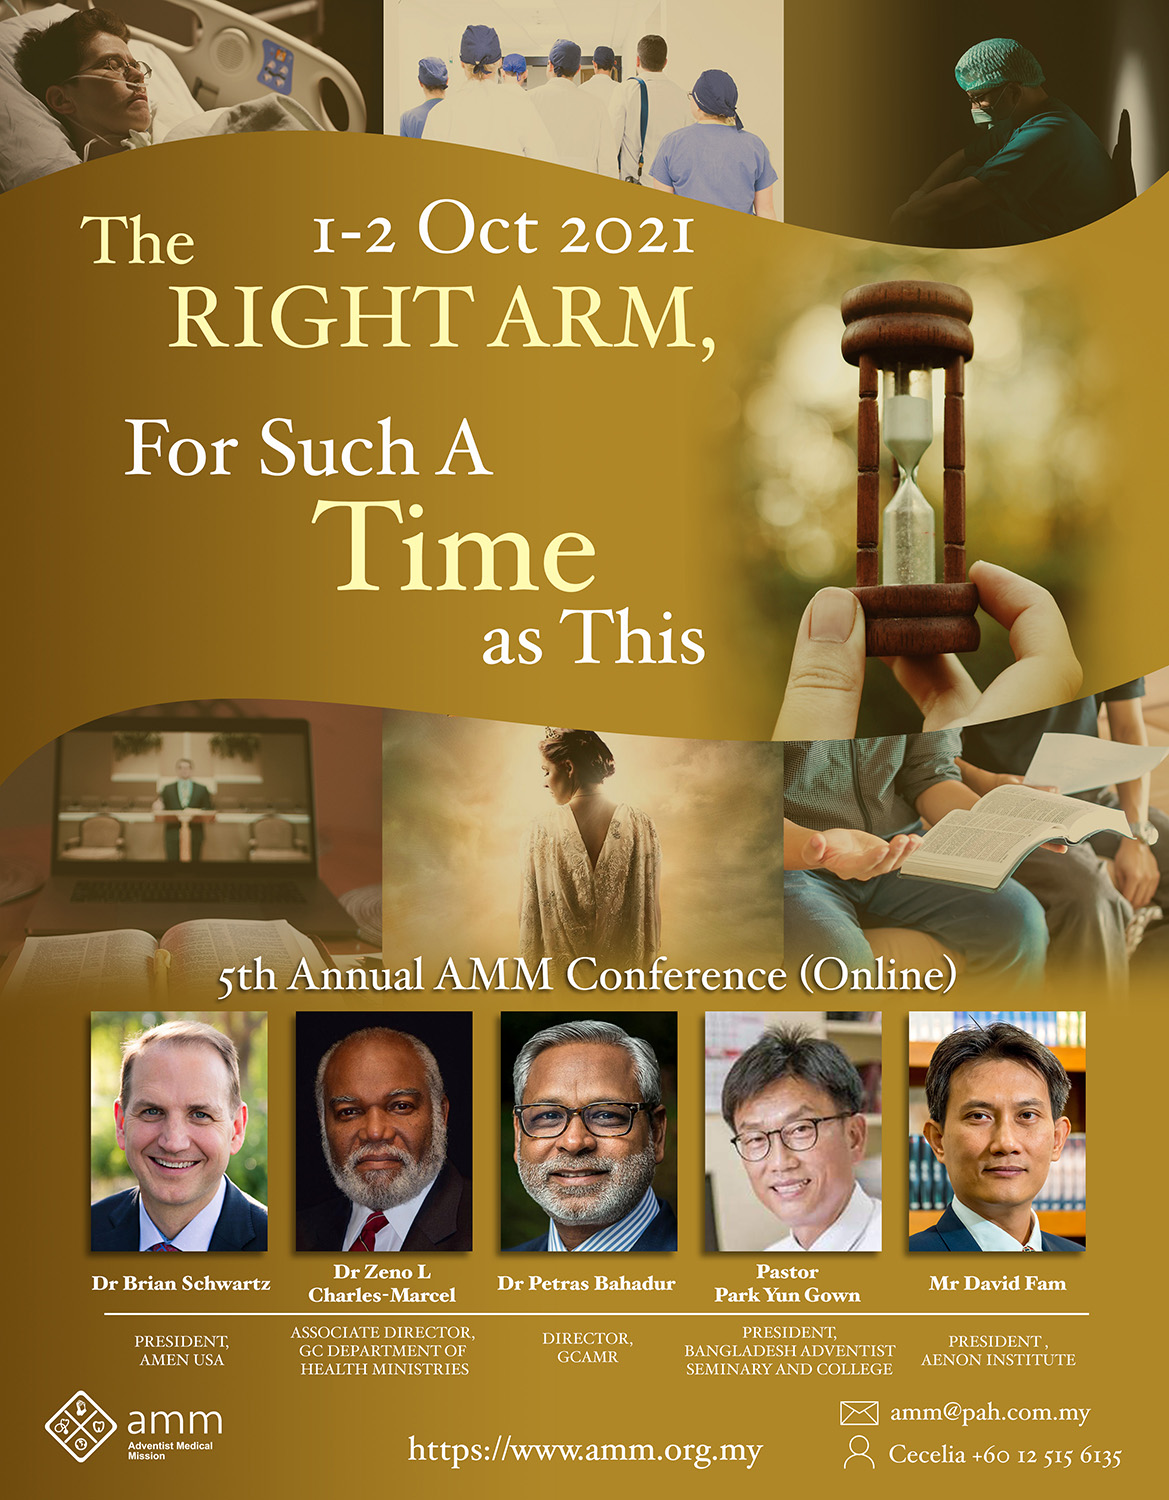 5th Annual AMM Conference (Online) – October 1 & 2, 2021